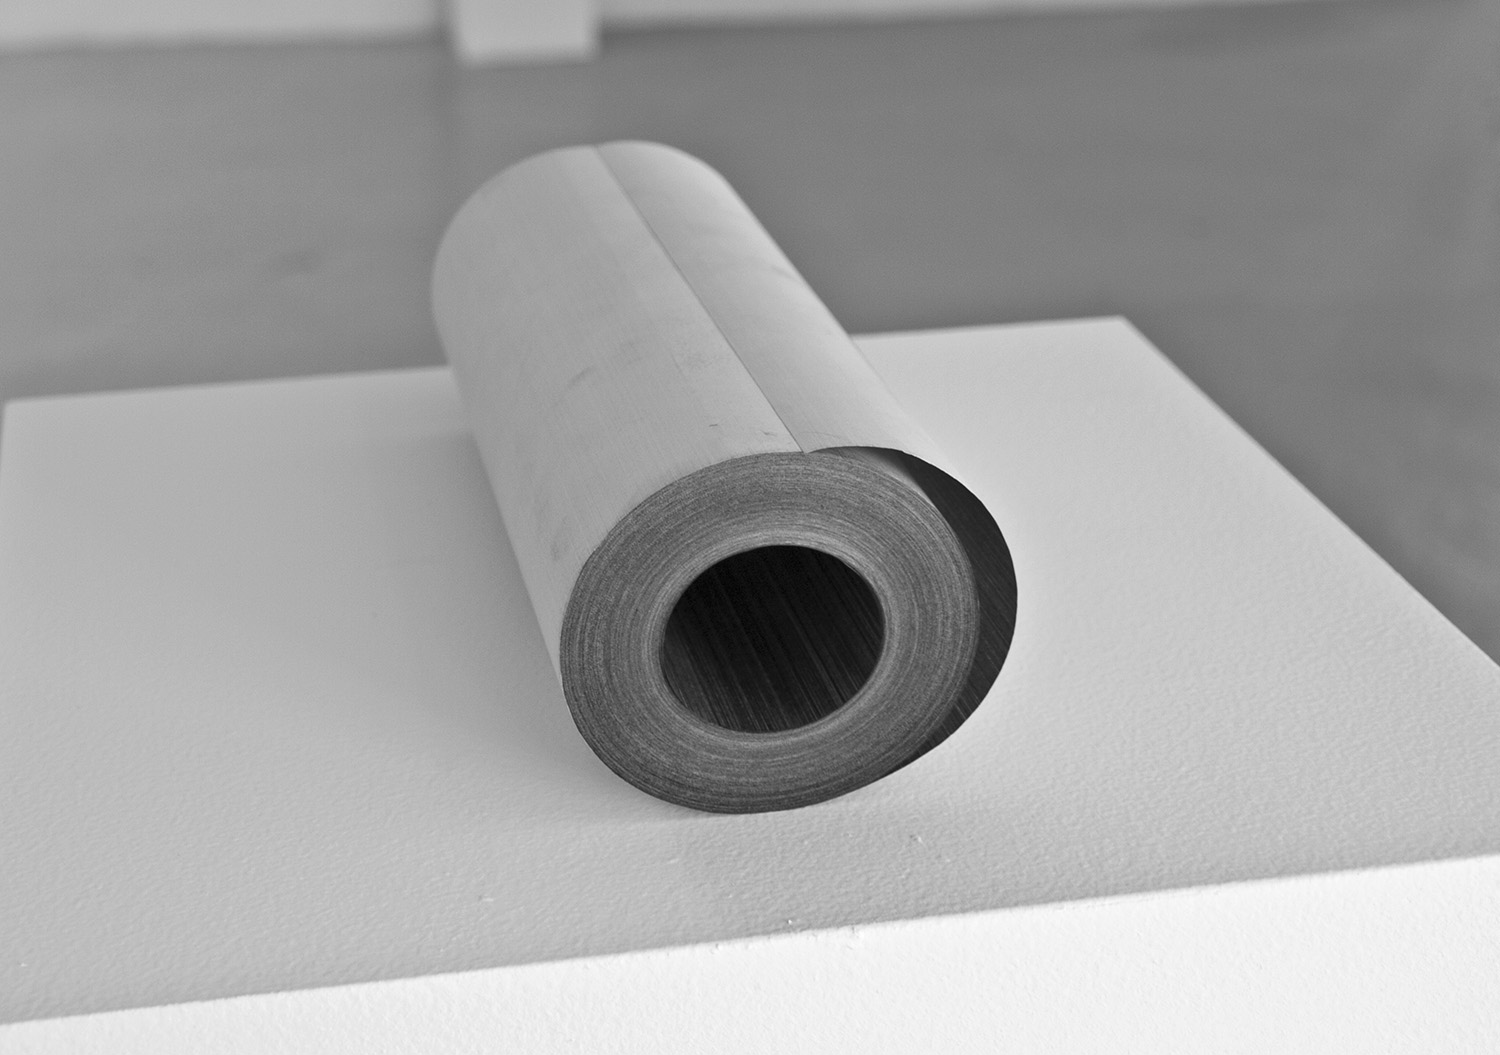 Line by Line II,  2010-11, 3 x 8.5 in; approx. 164 feet, fax paper roll, graphite